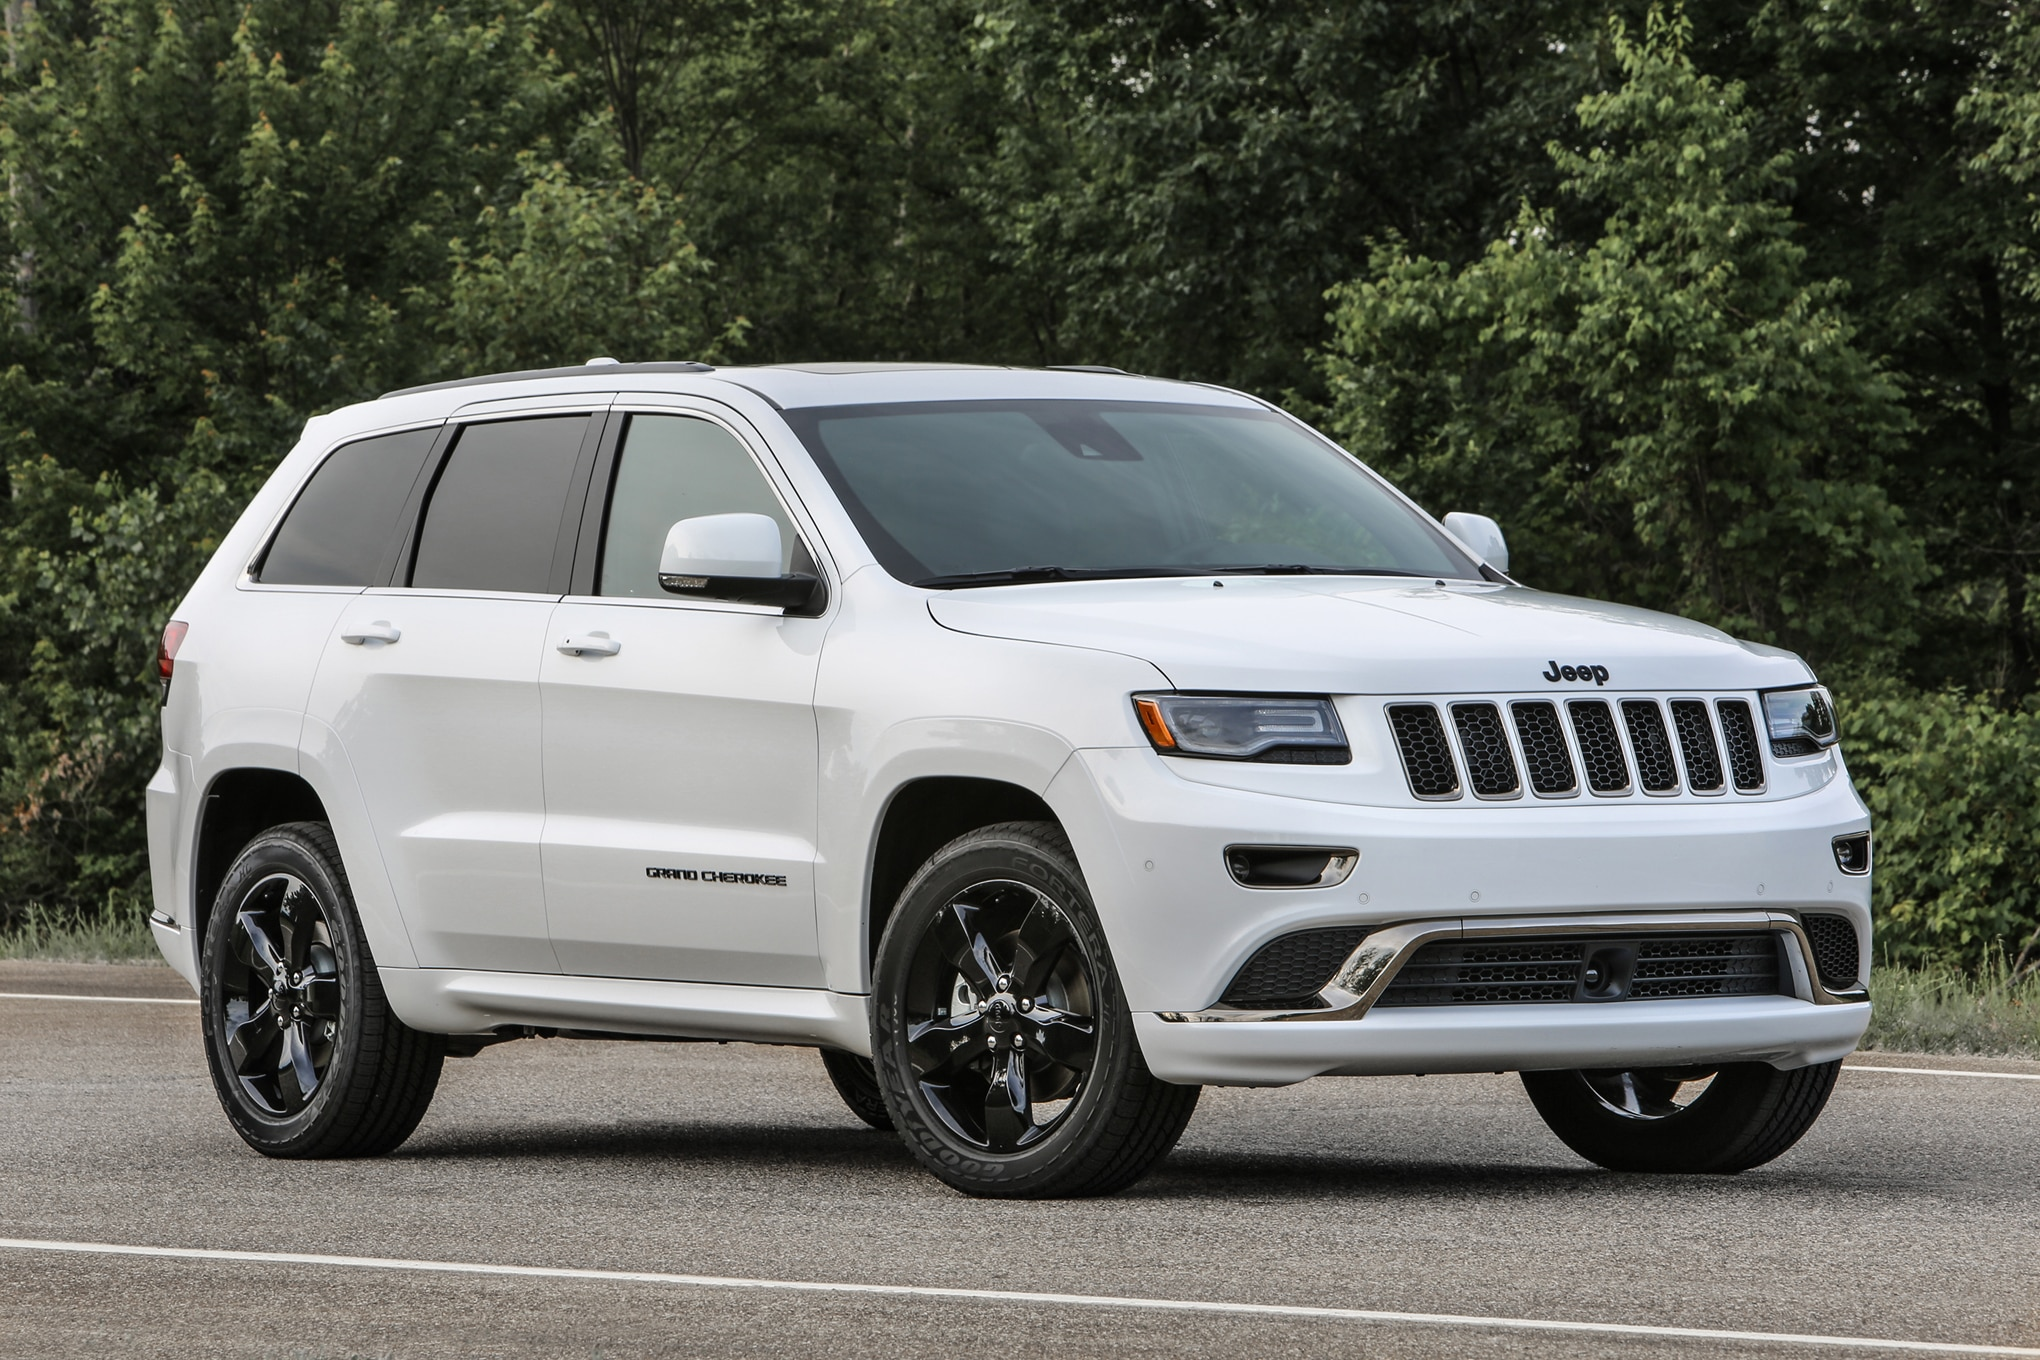 37 000 2016 Jeep Grand Cherokee Suvs Being Recalled For